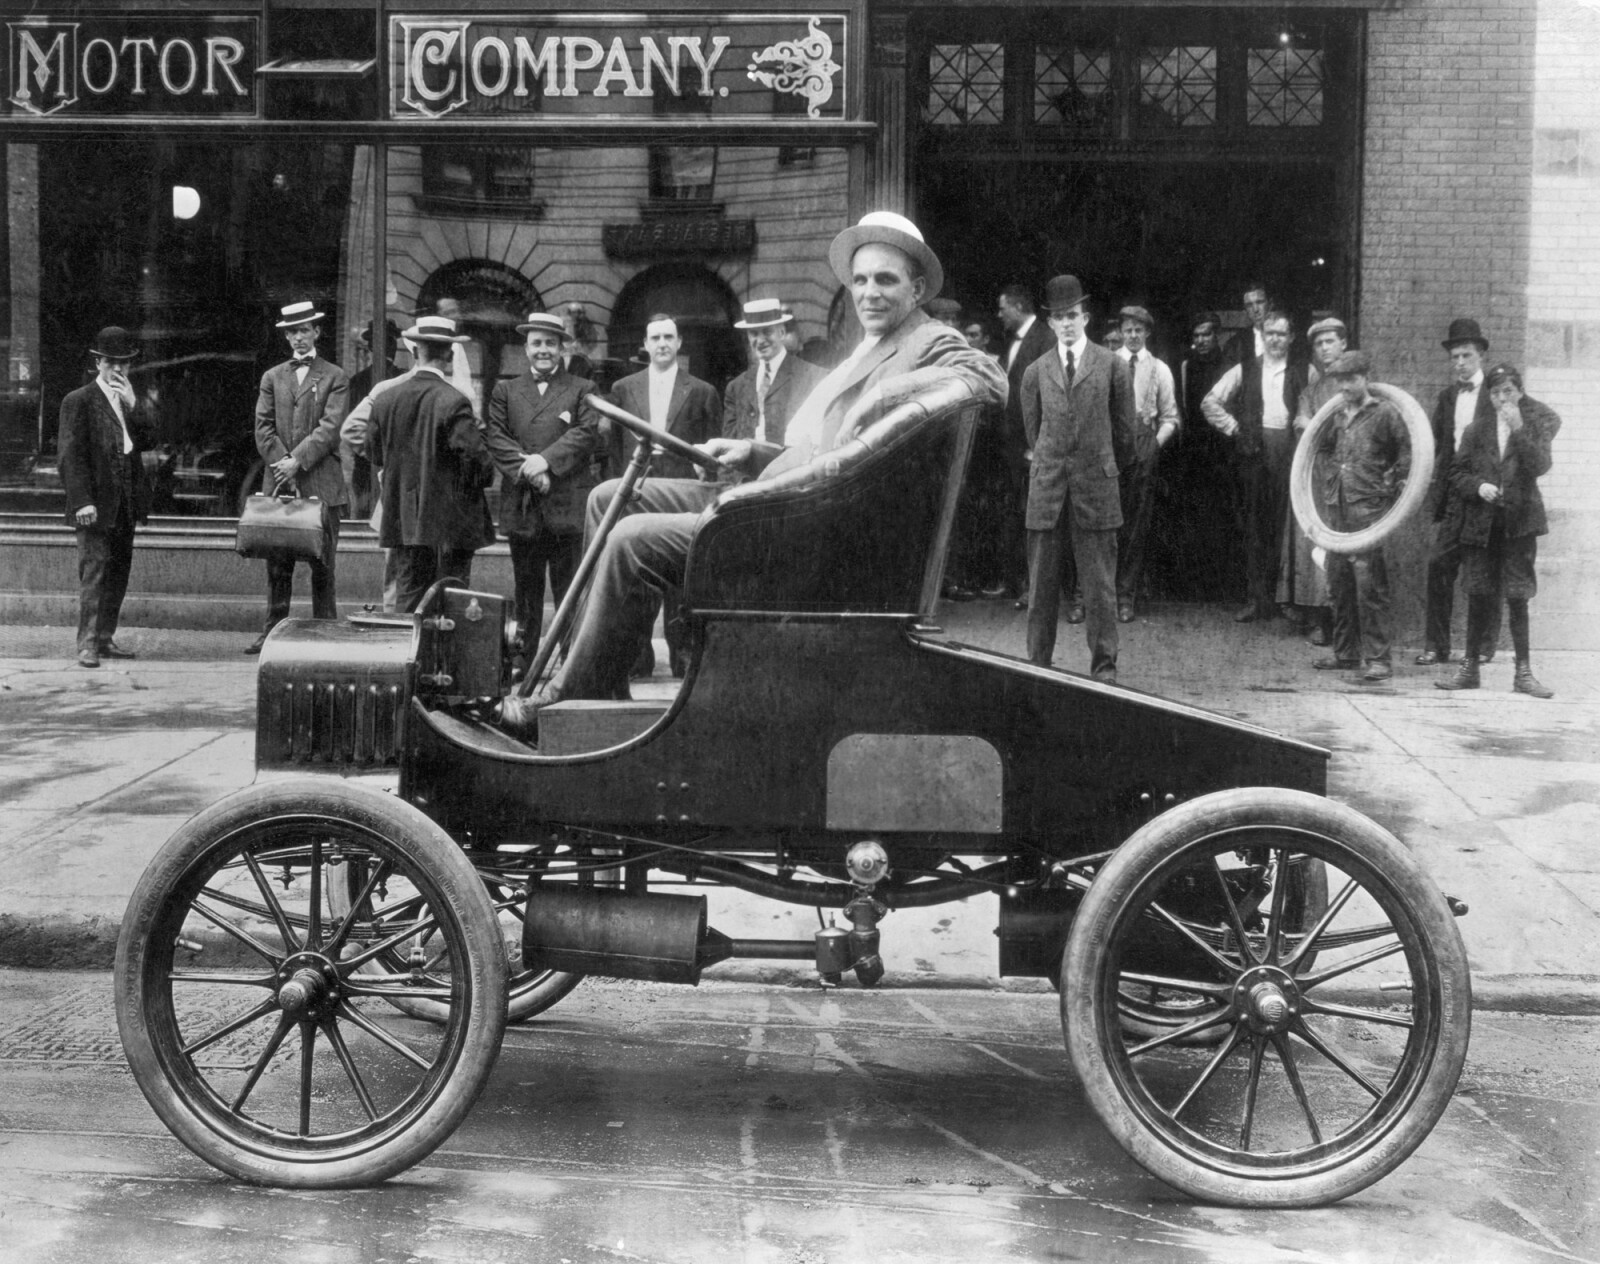 The Ford Motor Company is incorporated